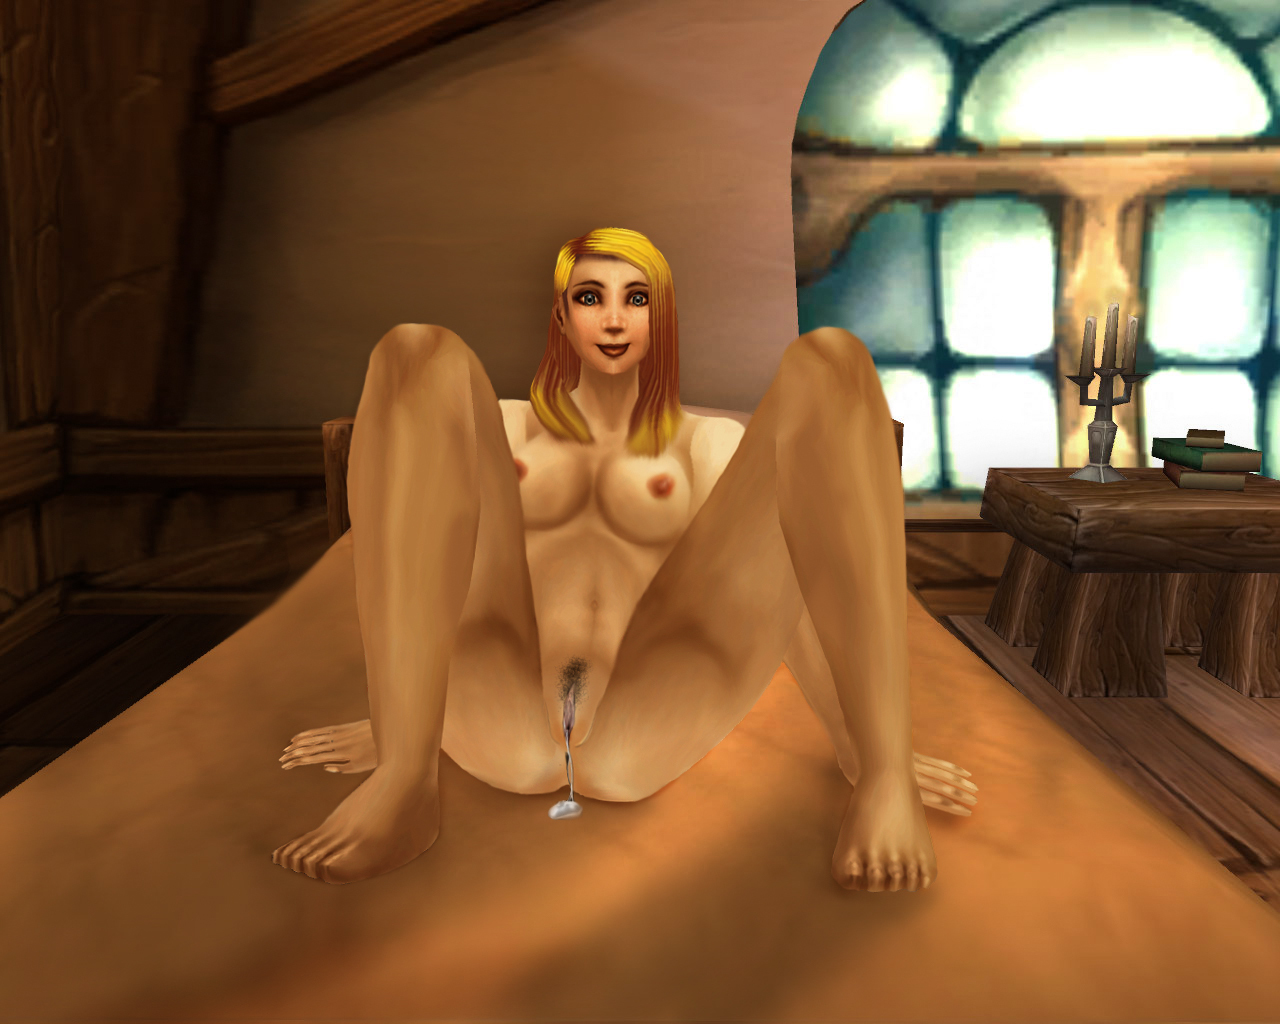 Sexy porncraft gallery nude comic